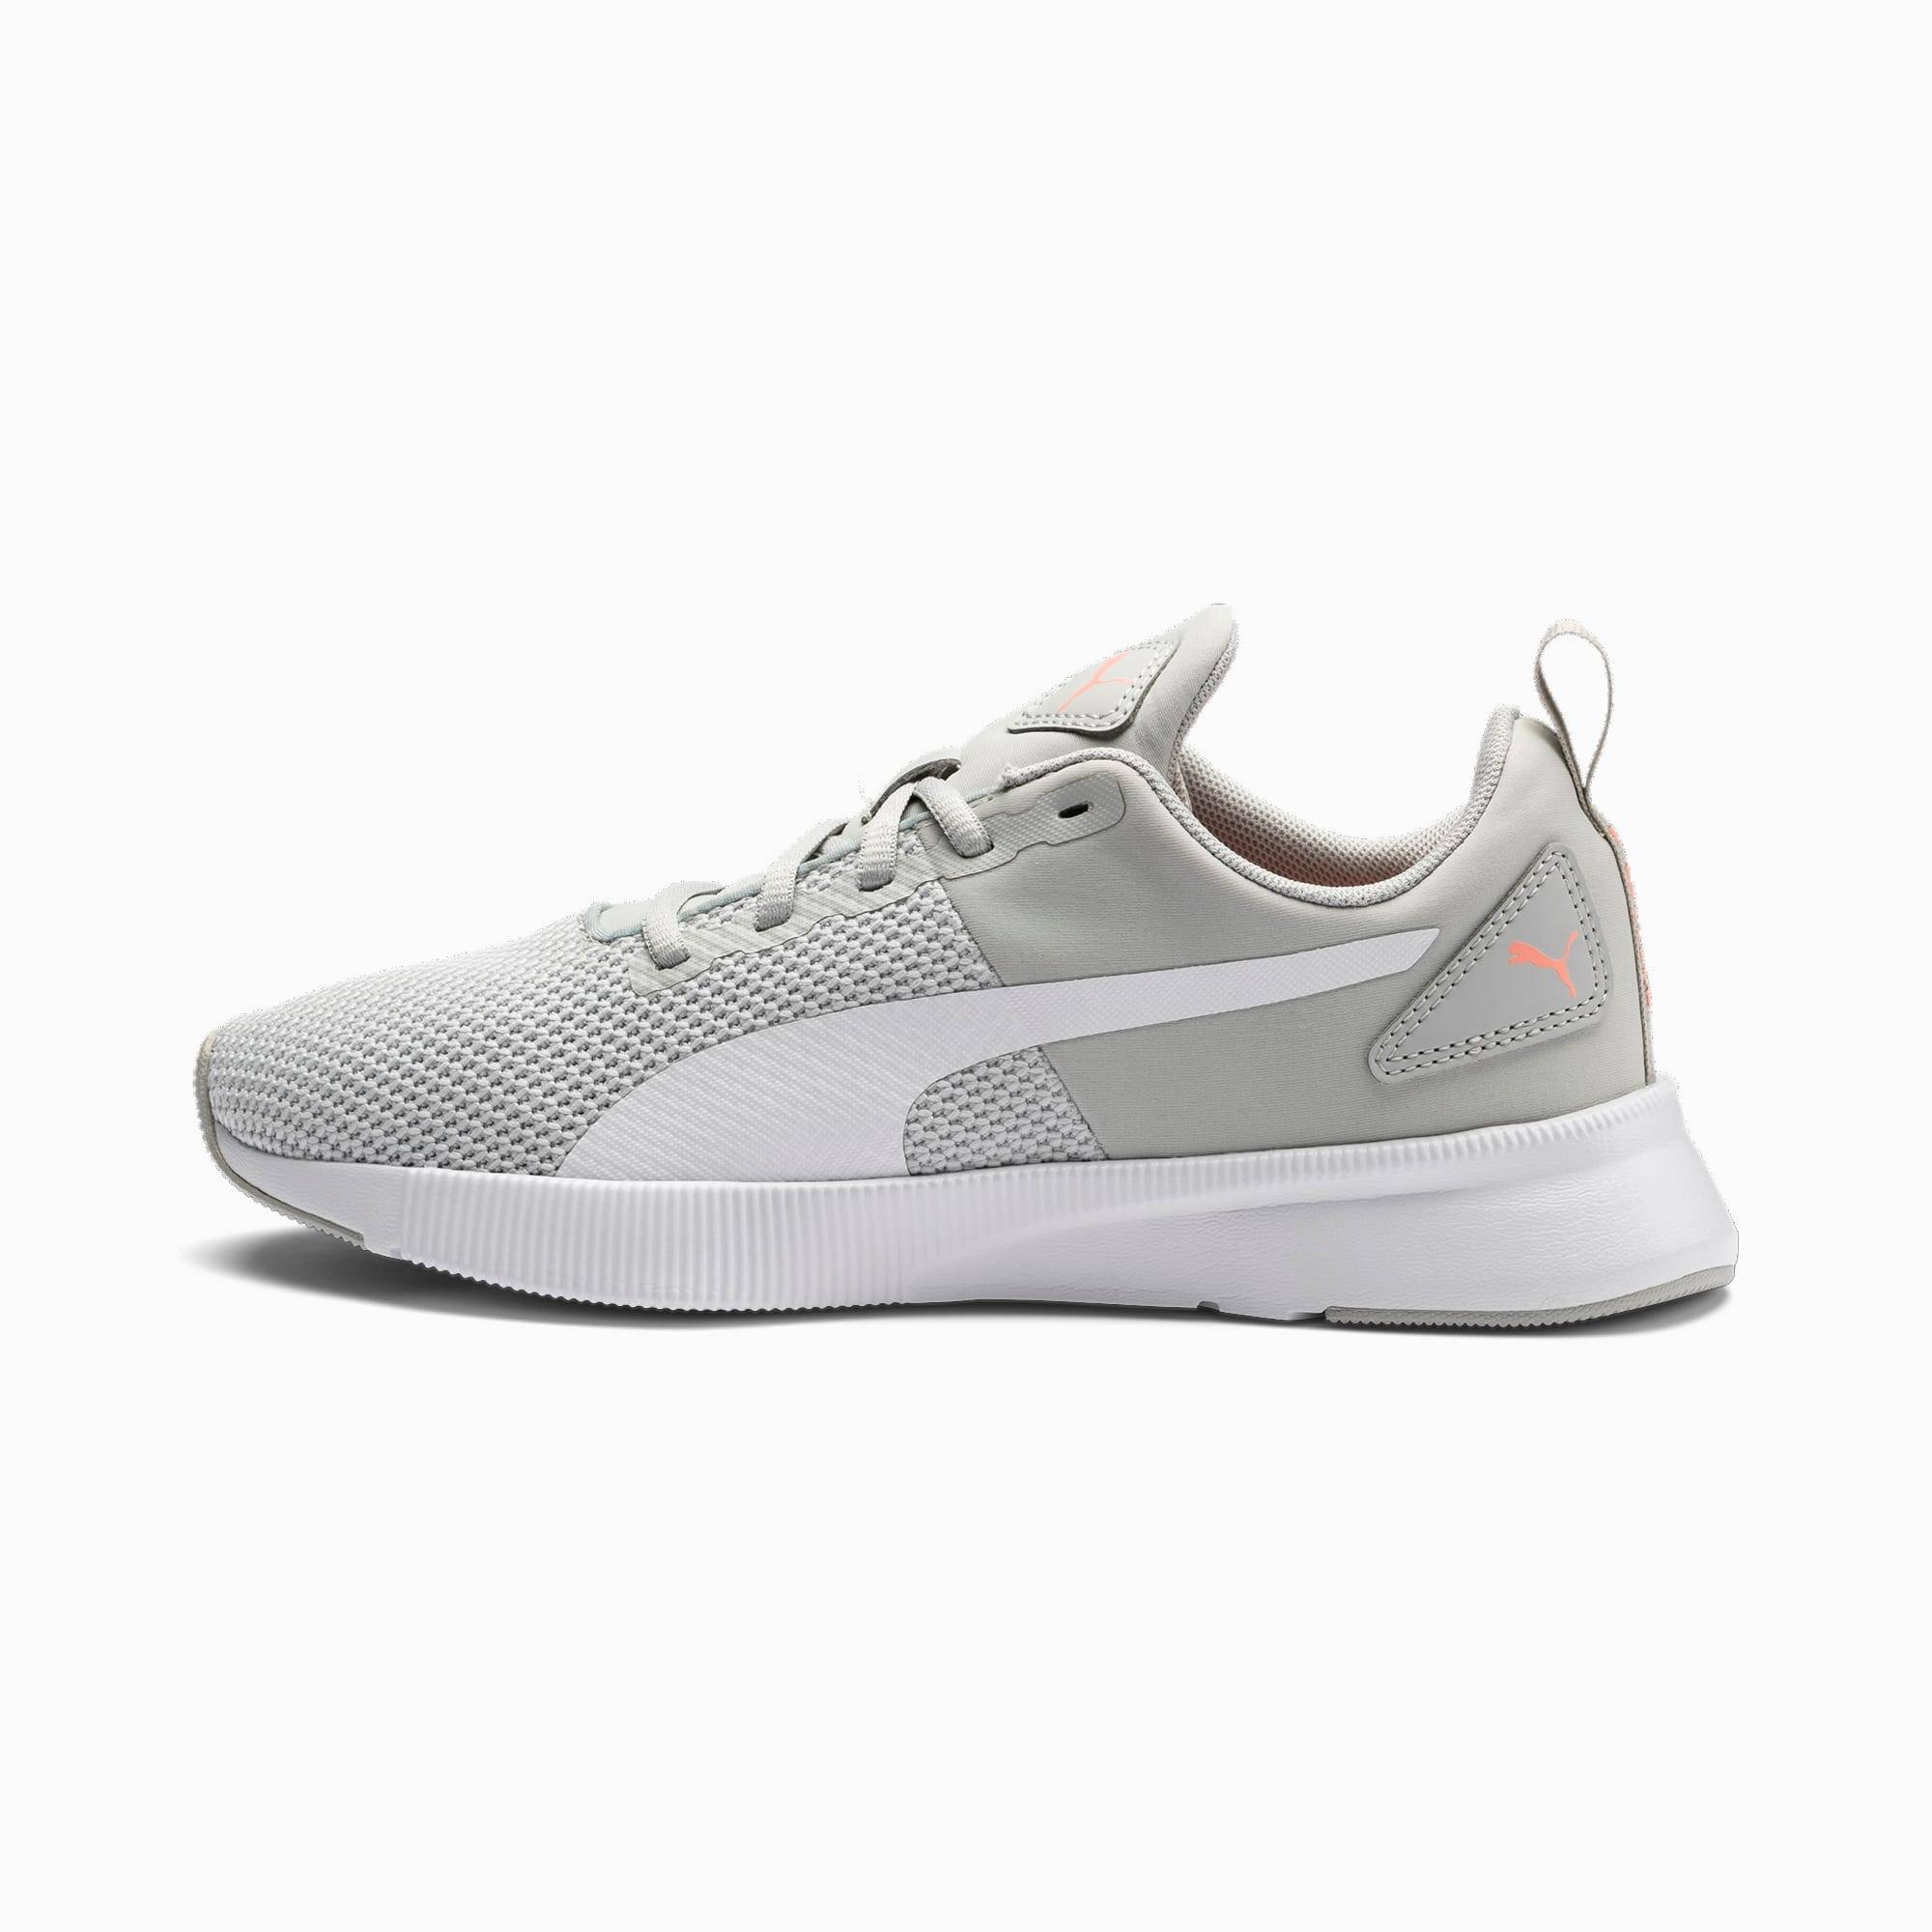 PUMA Chaussure de course Flyer Runner, Blanc/Rose/Gris, Taille 41, Chaussures